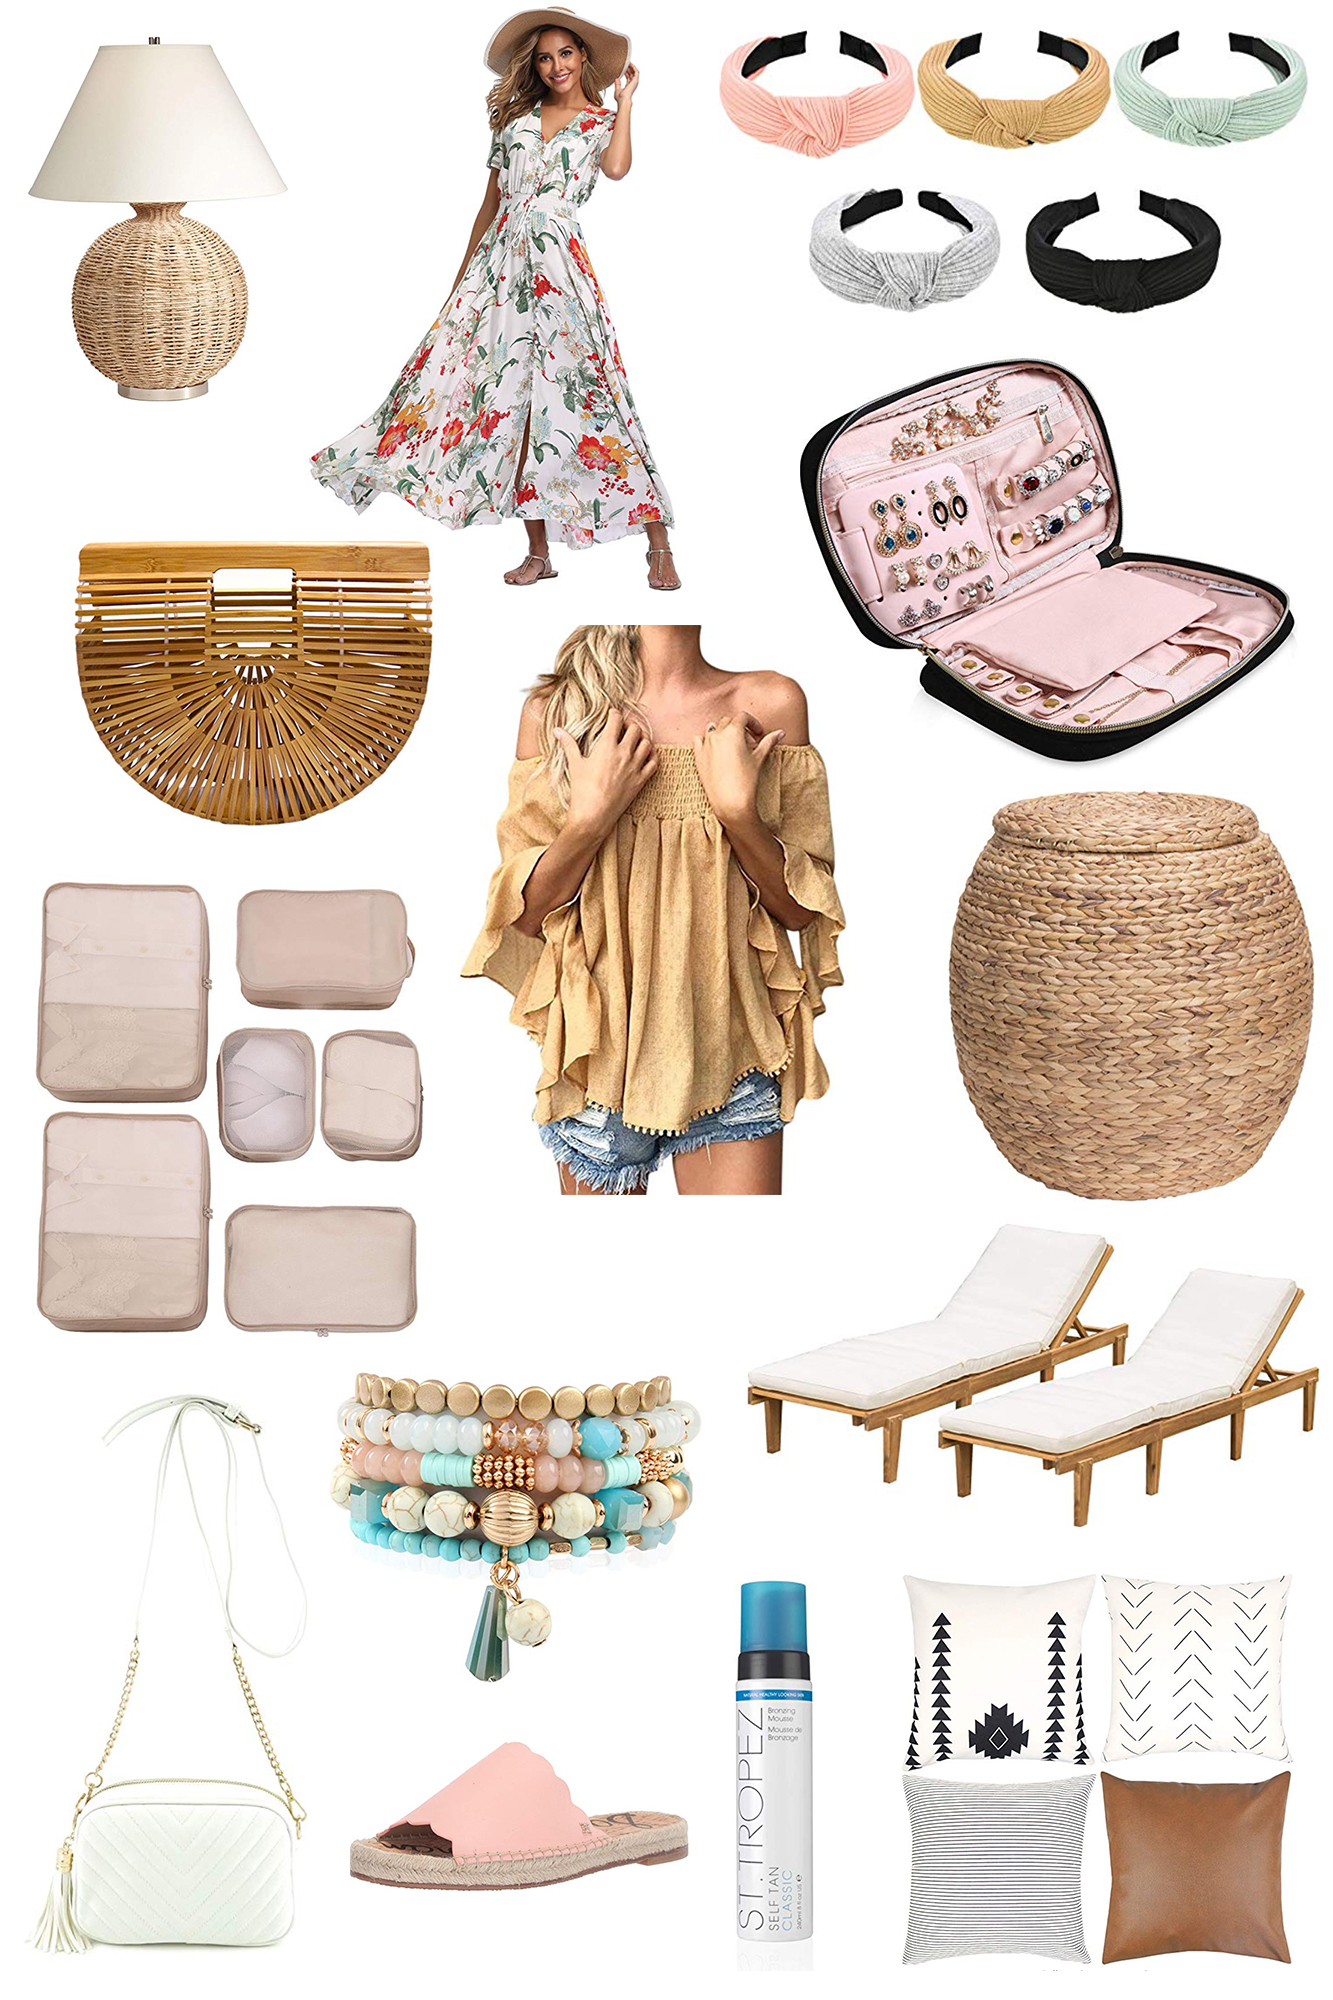 Favorite Amazon Finds - Inexpensive fashion, home decor, and more with many available through prime shipping. | Kristy Wicks